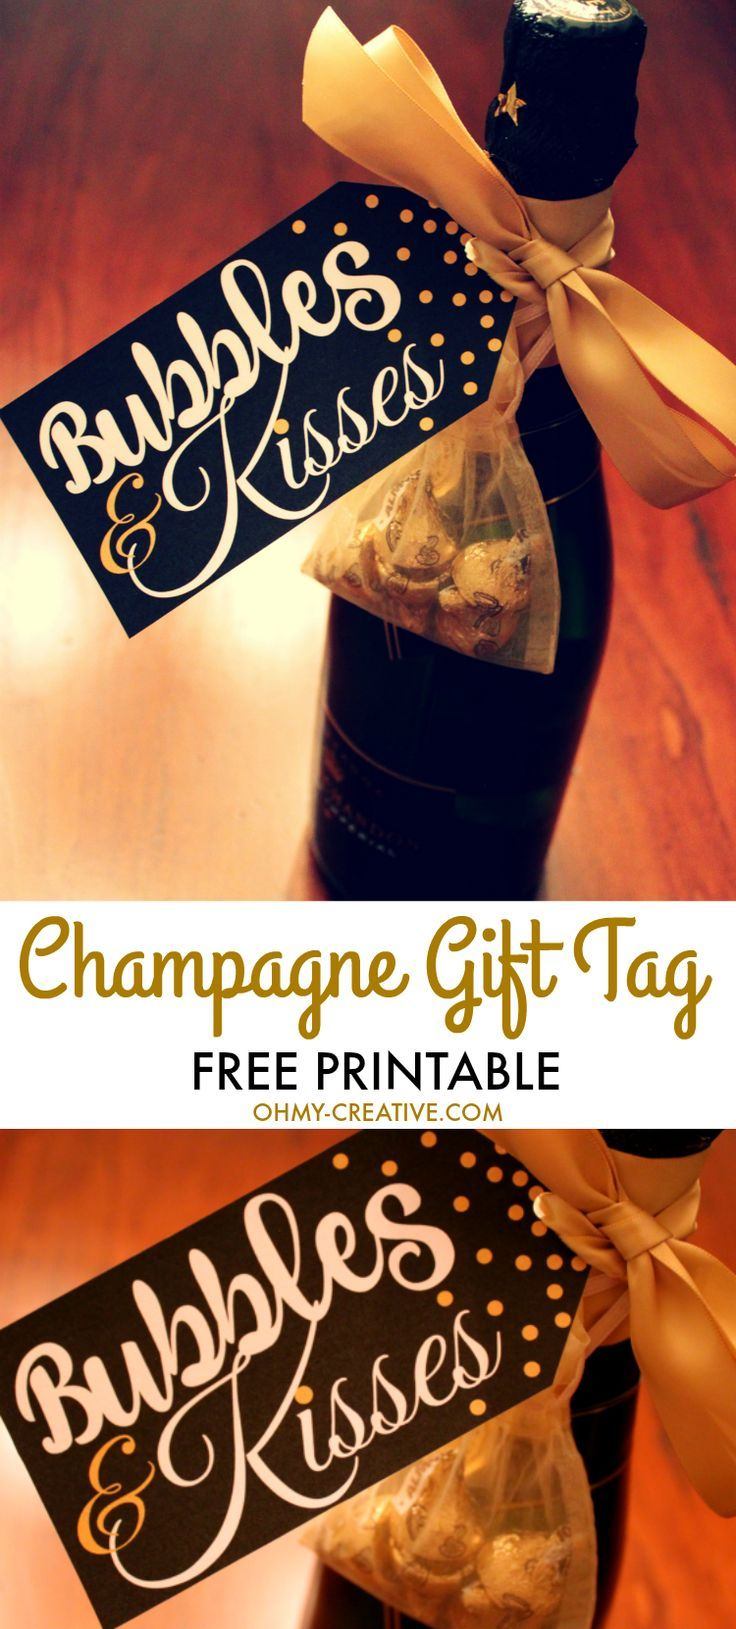 From New Year's Eve, Weddings or any celebration, grab this Bubbles and Kisses Champagne and Chocolate FREE Printable Gift Tag to add to your champagne bottle! | OHMY-CREATIVE.COM